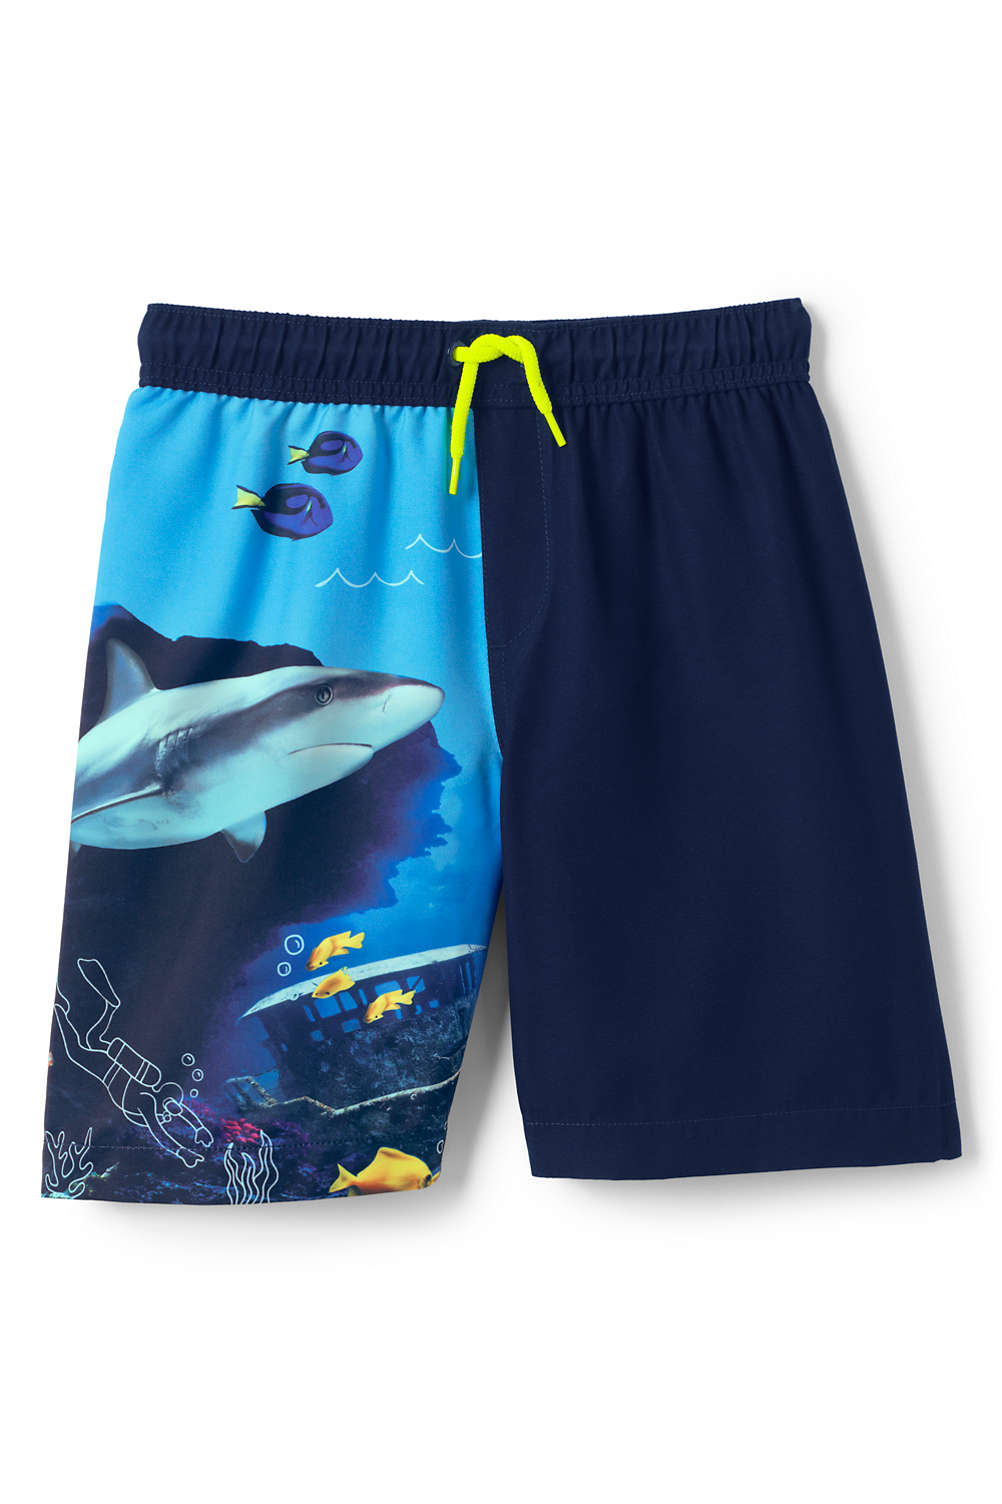 a4afa9169d Boys Wrap Around Shark Swim Trunks from Lands' End